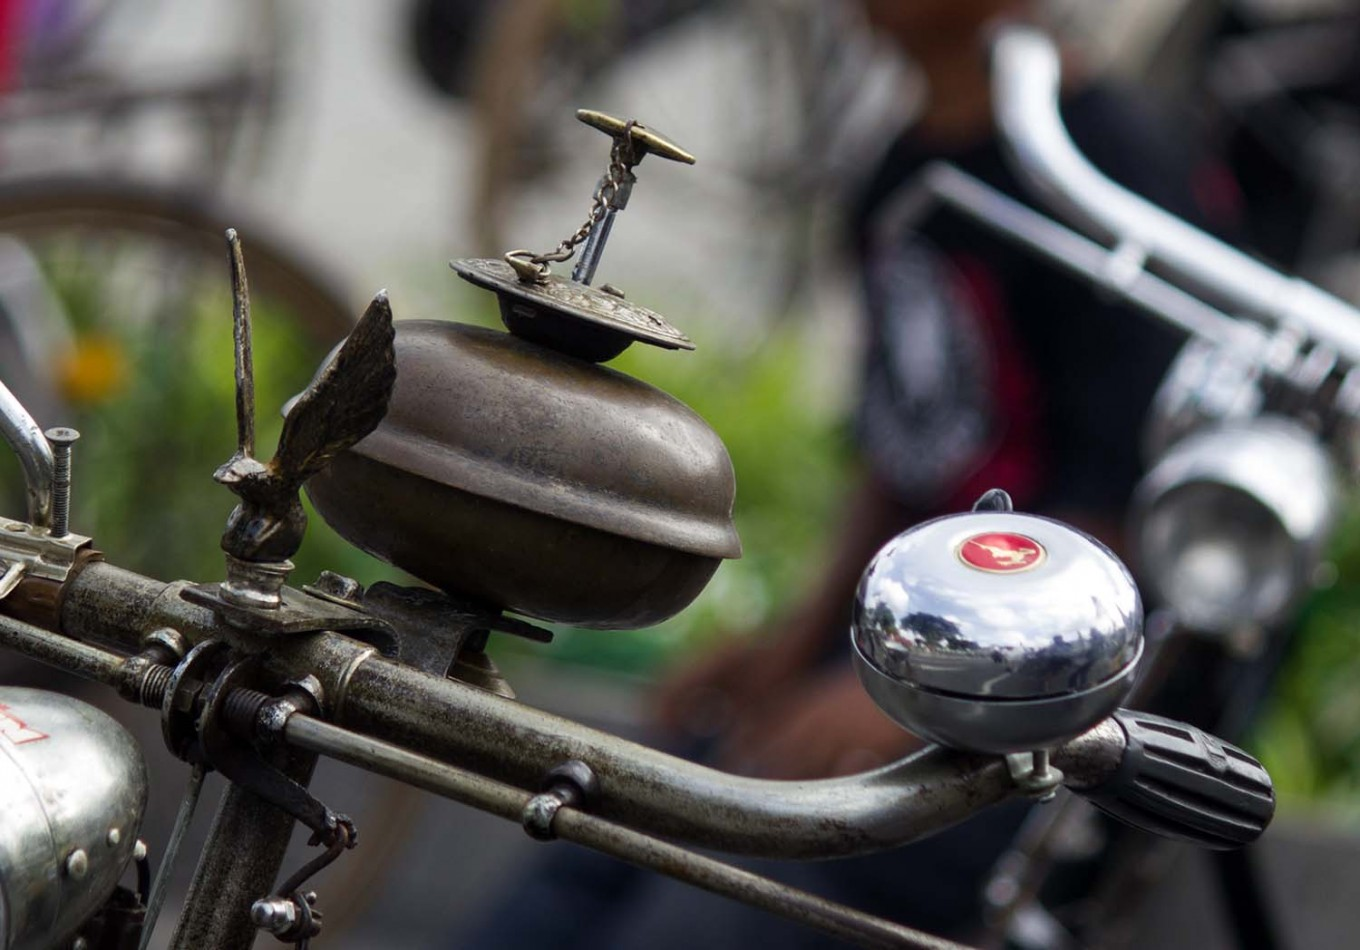 Two bells take center stage on a bicycle's handlebar. JP/Tarko Sudiarno